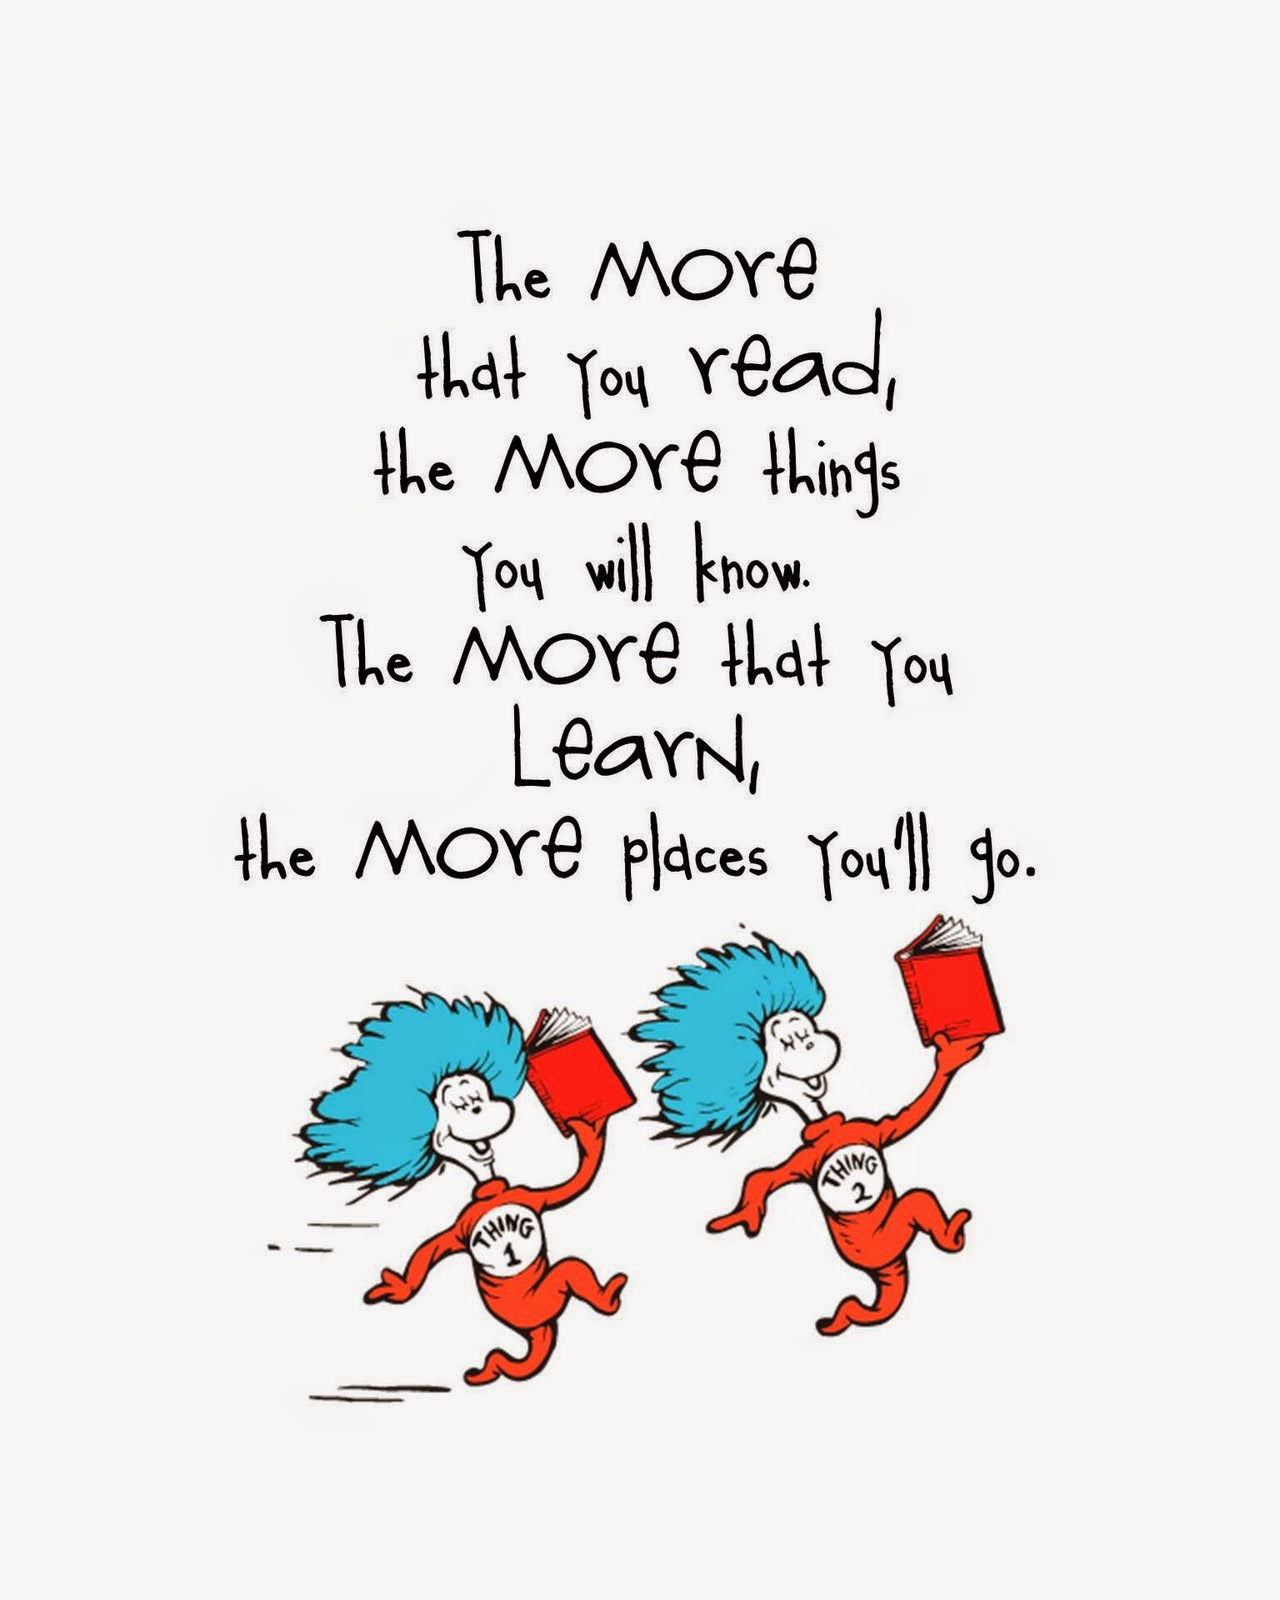 Dr Seuss has the right idea: Read, learn, explore